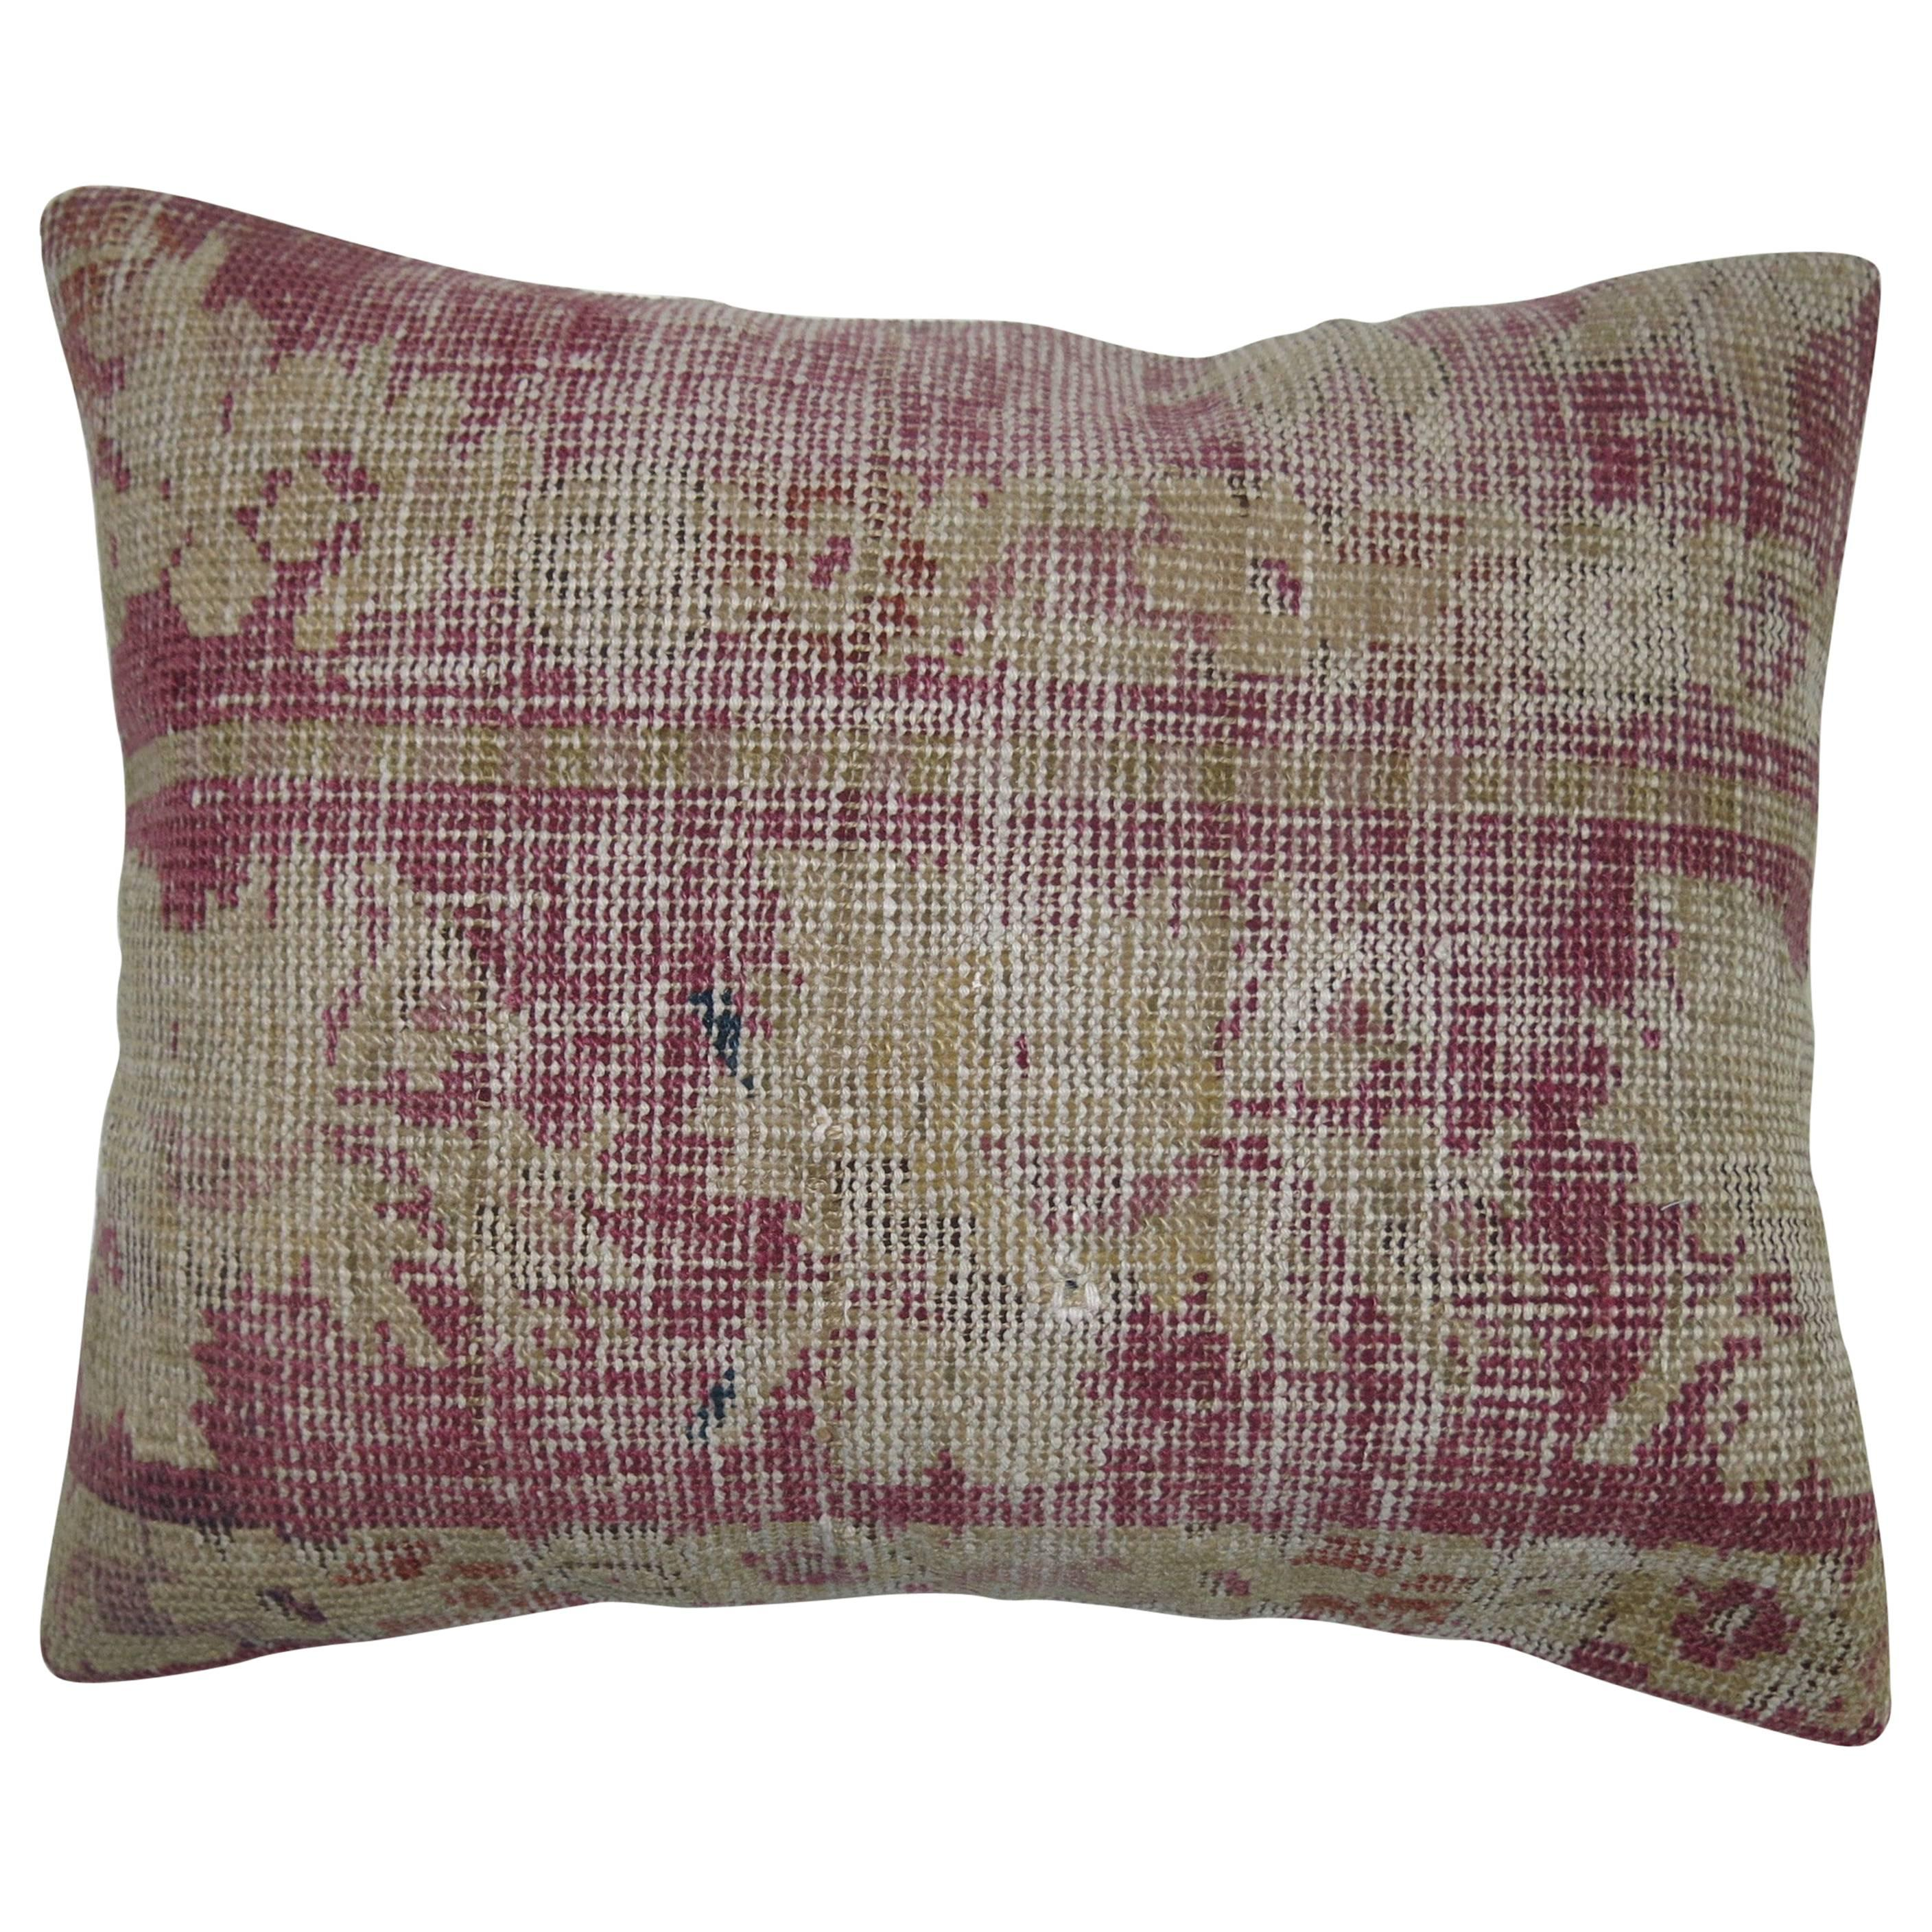 Distressed Pillow from a 19th Century Turkish Rug